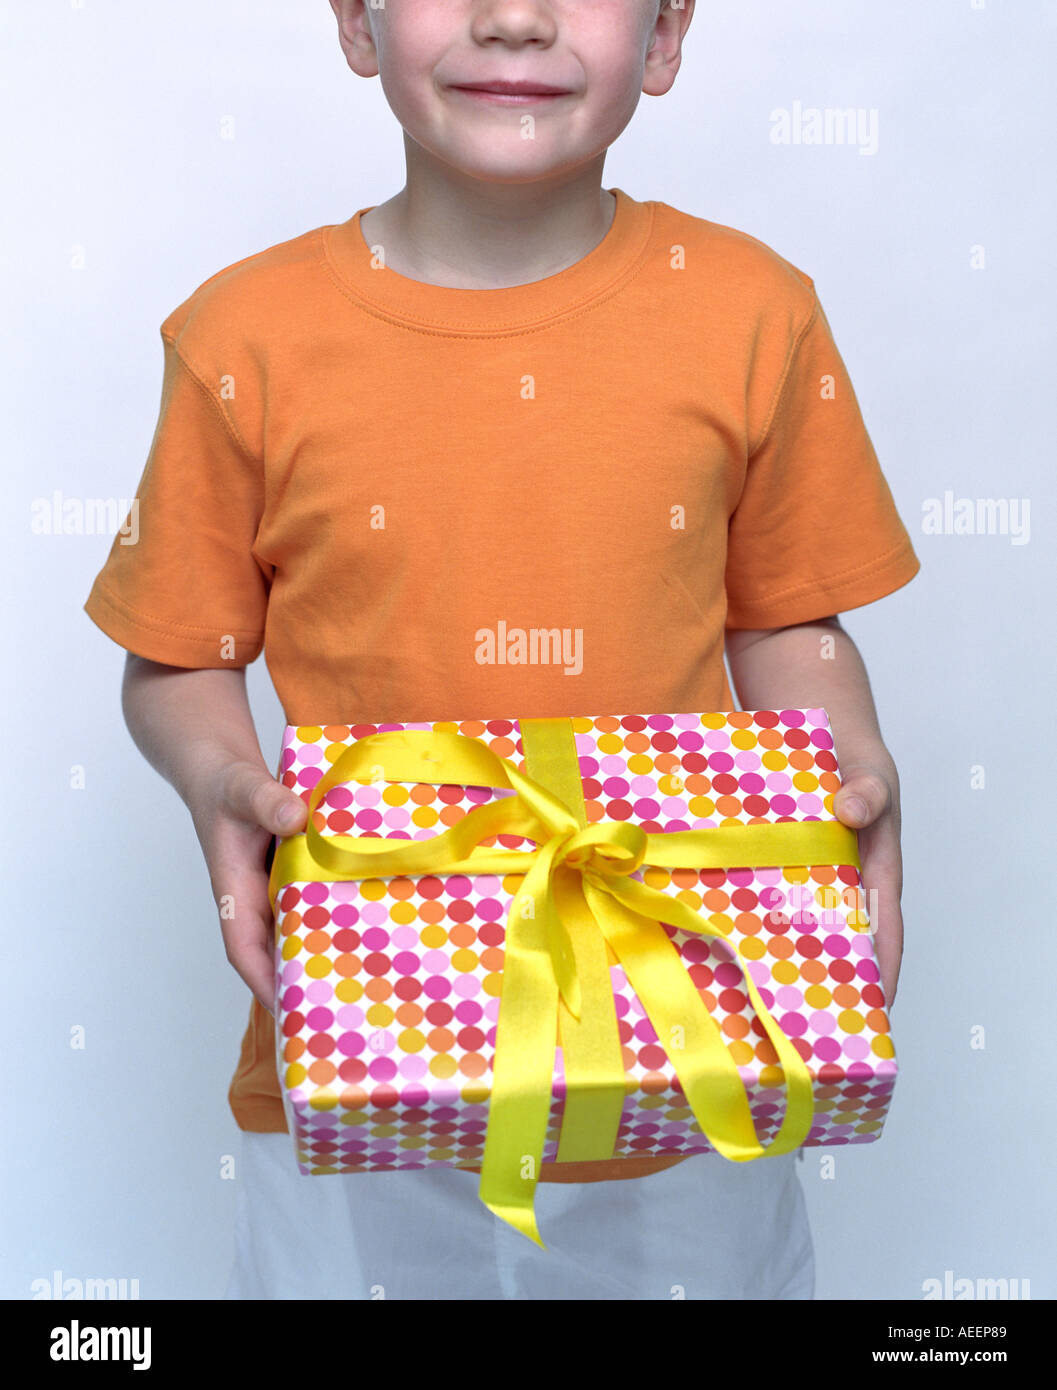 Little Boy With Colorfully Wrapped Birthday Present In His Hands